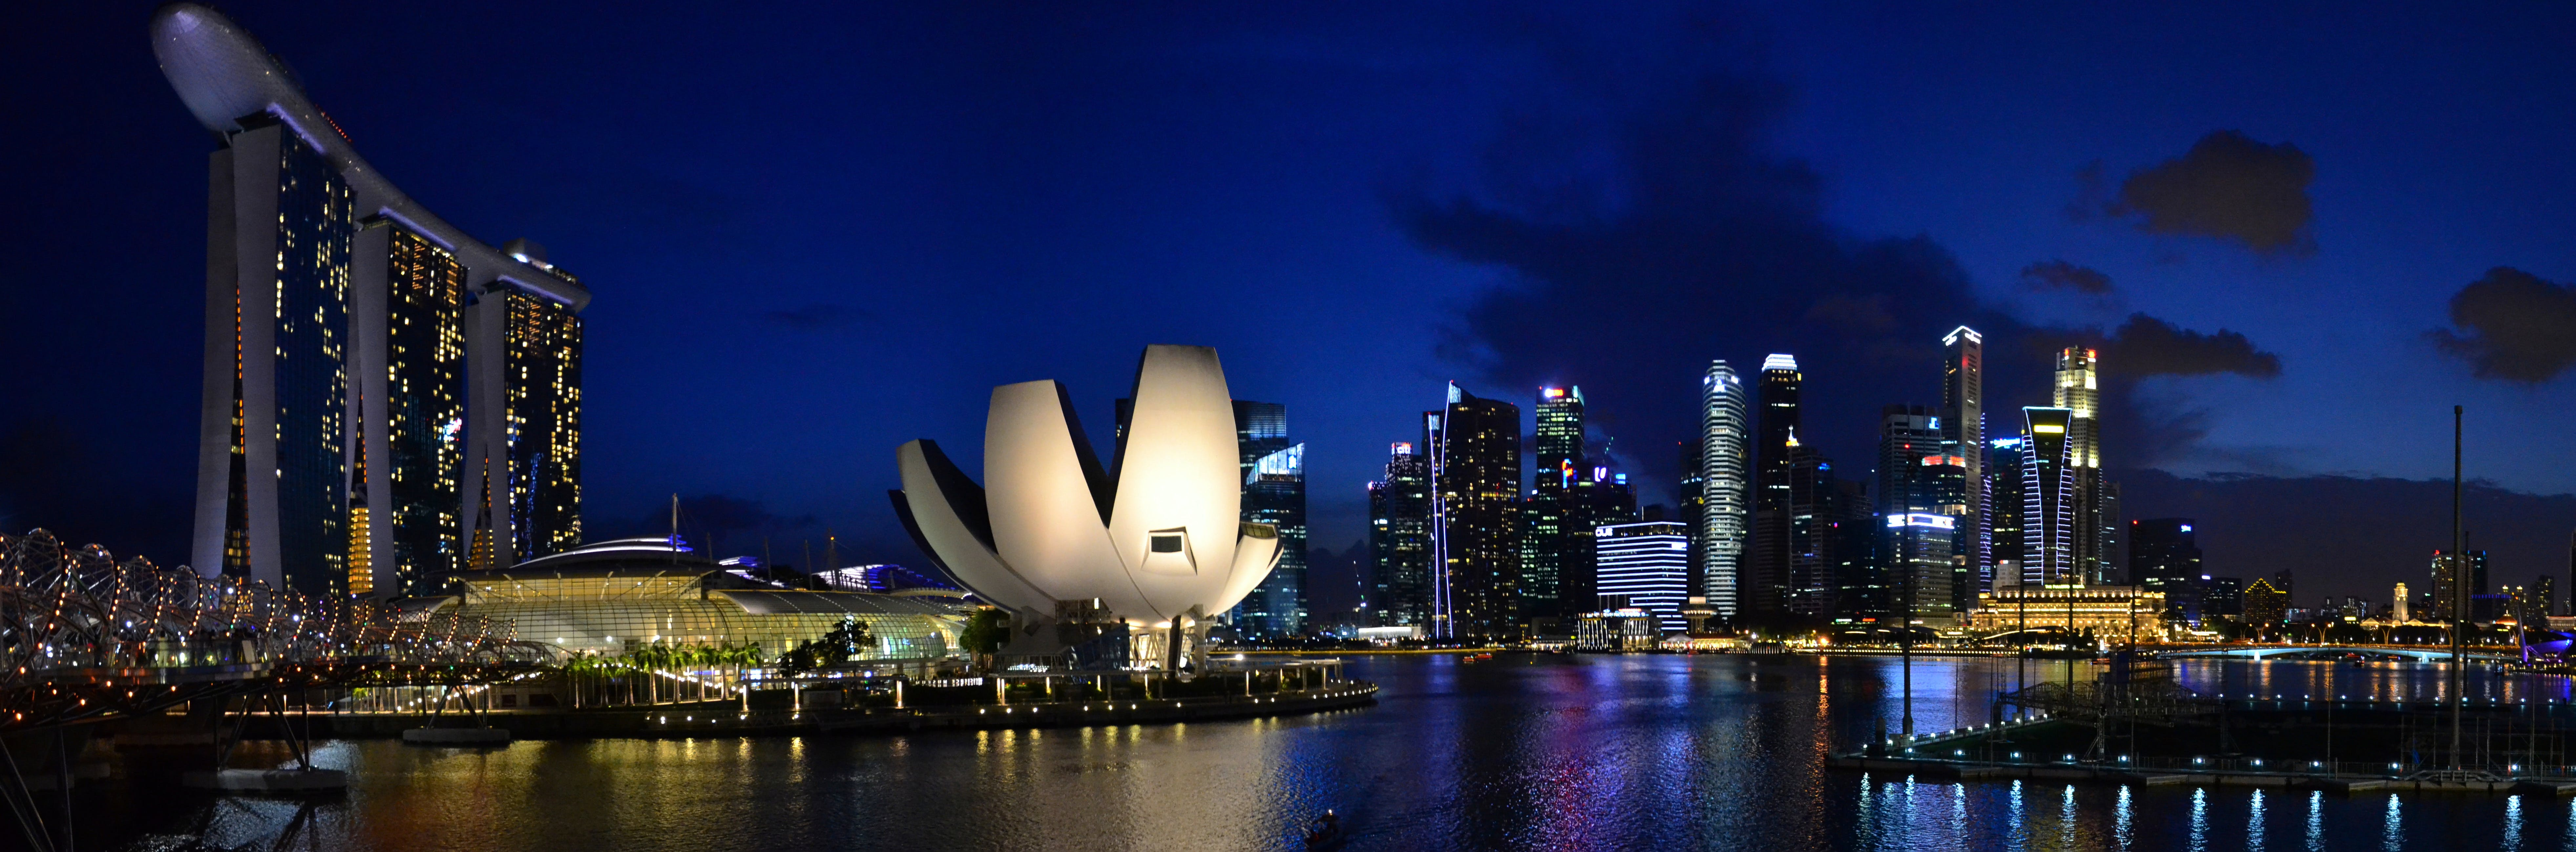 Free stock photo of city, city-challenge, Marina Bay Sands, singapore